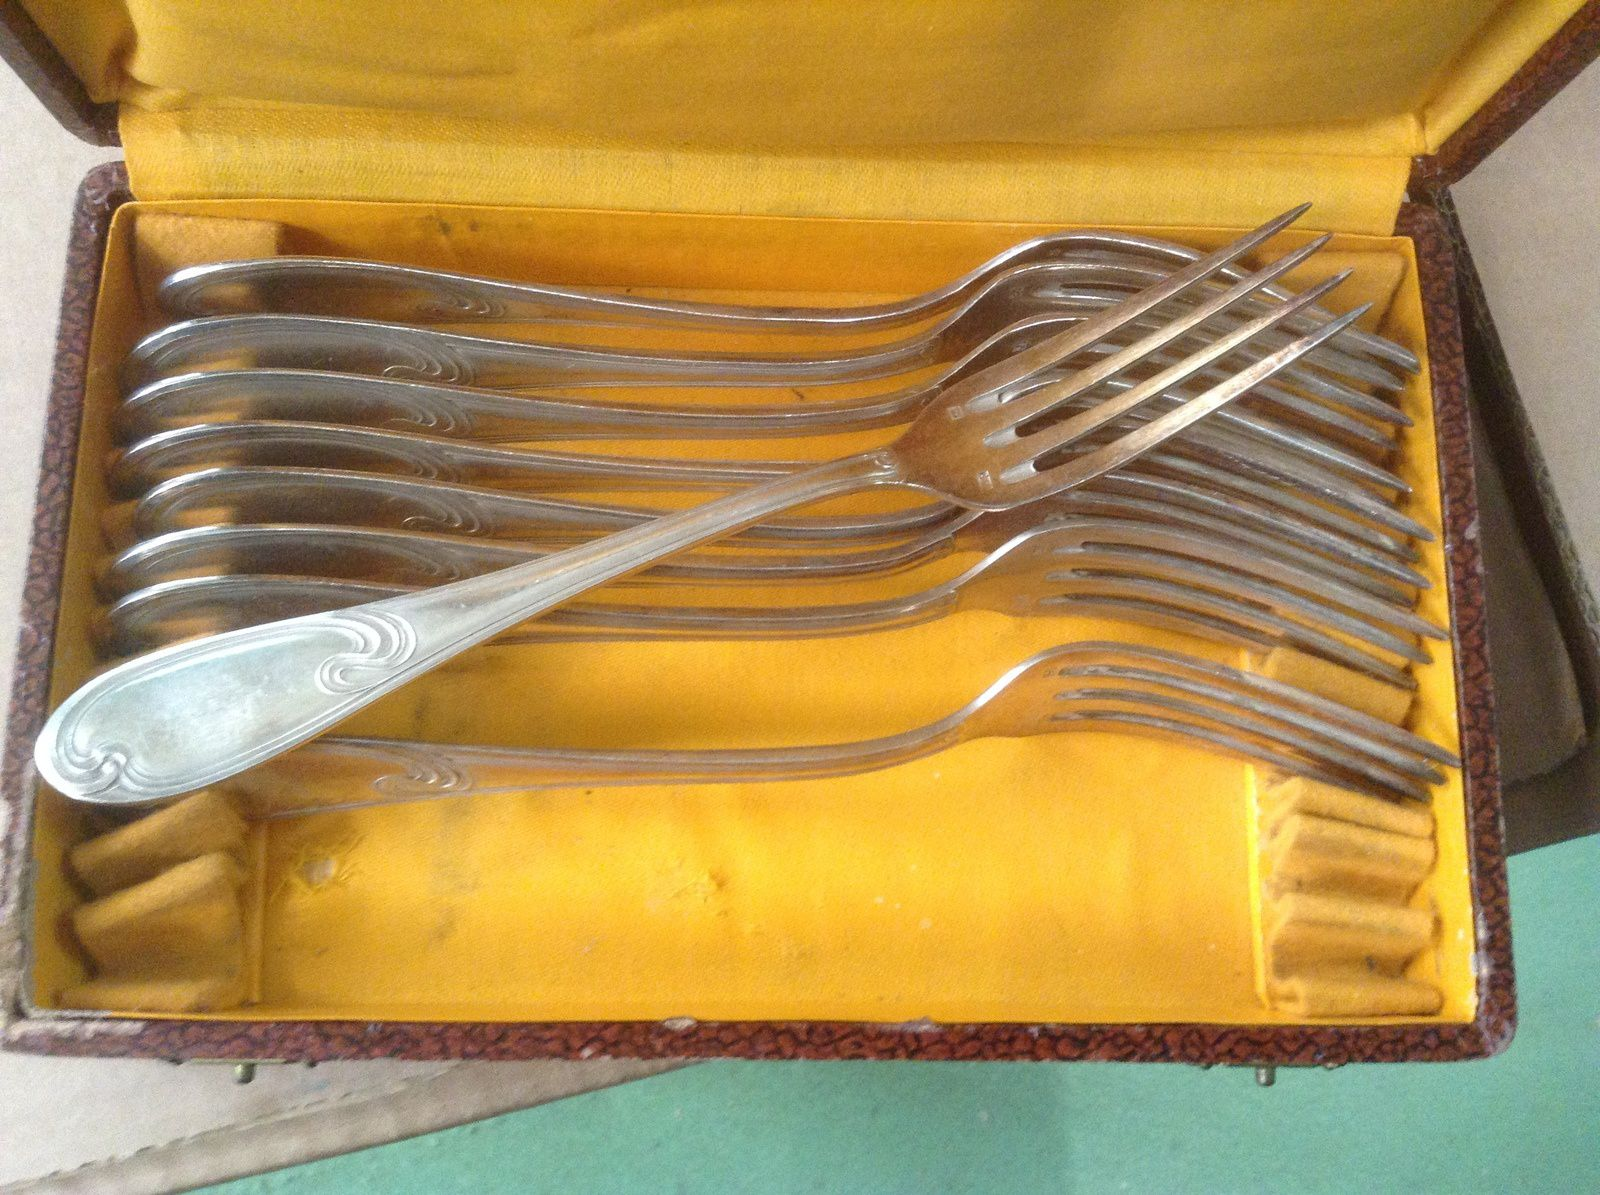 LOT DE 8 FOURCHETTE NETAL ARGENTE A 2€ PIECE  MODEL ART DECO